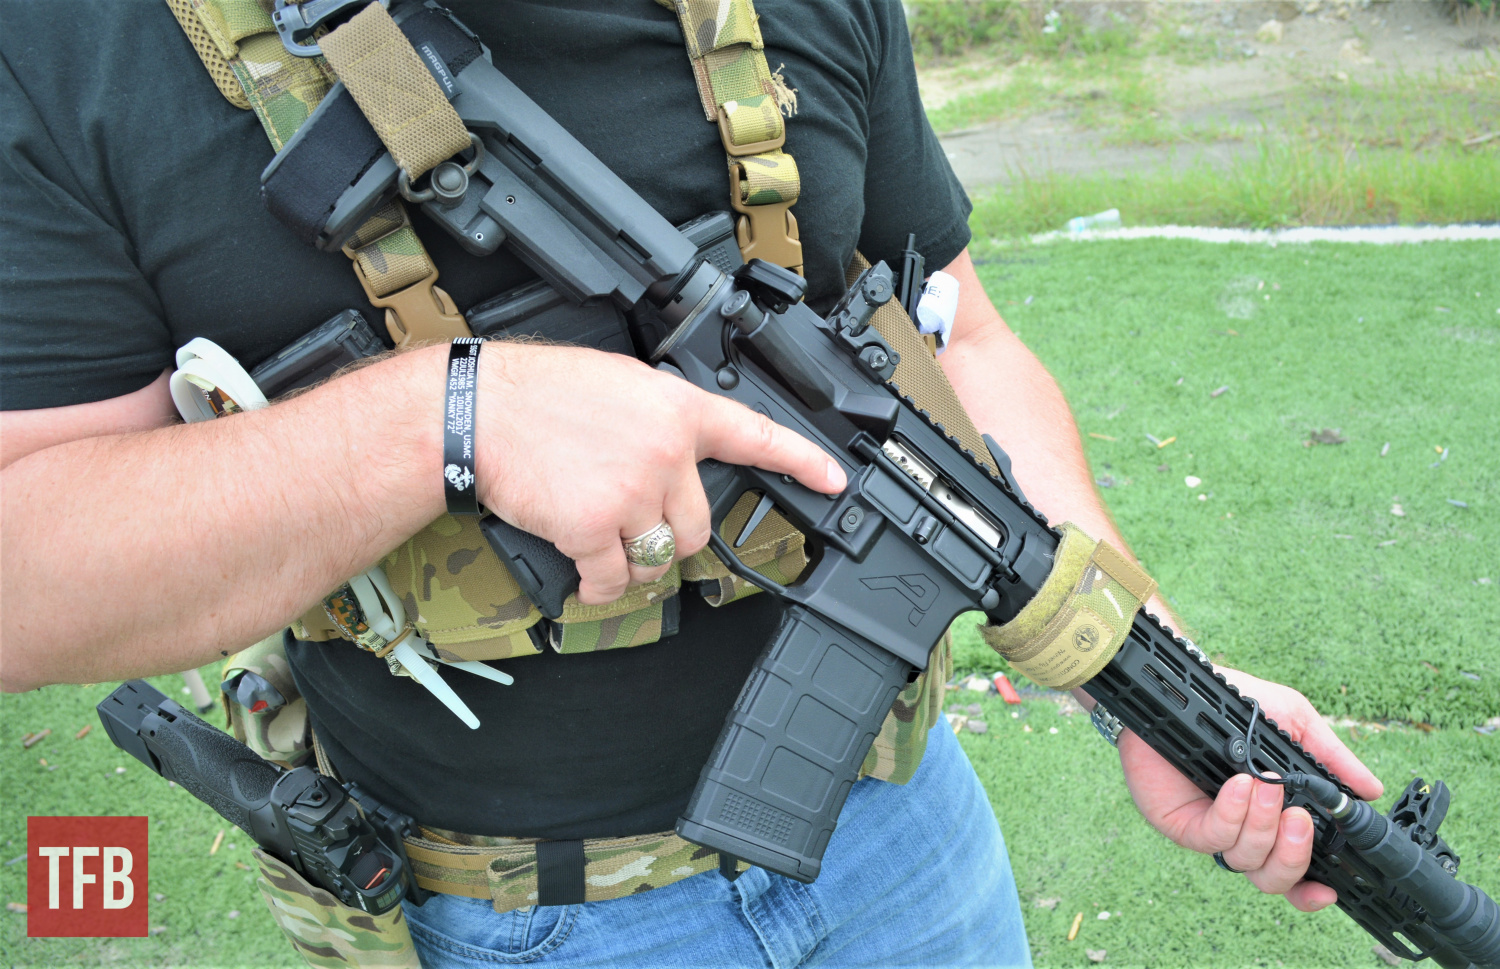 One of the demo Zero Triggers installed and ready to begin live-fire testing at the range.